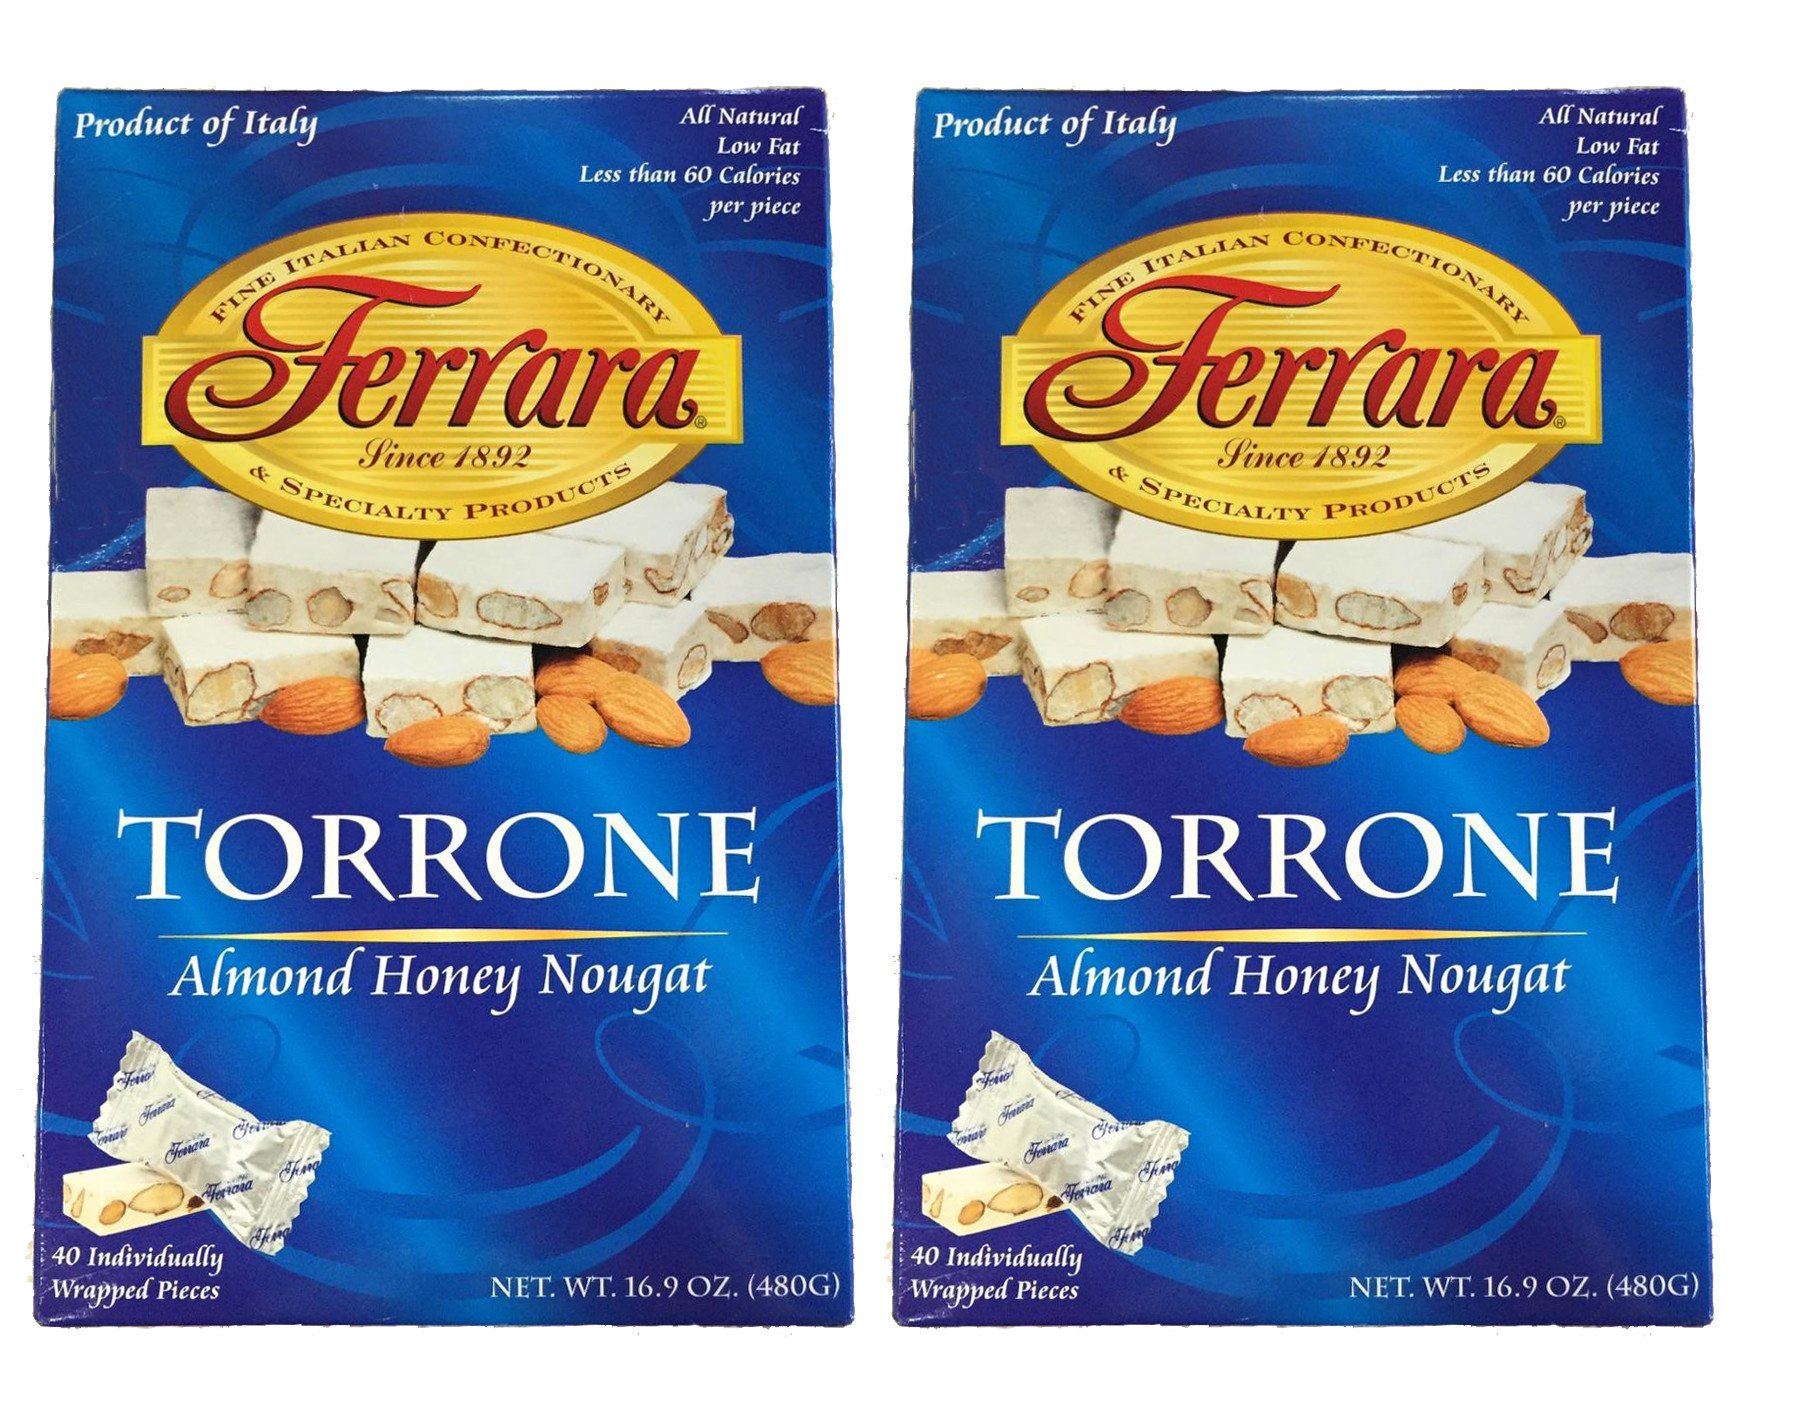 Ferrara Torrone Candy, 40-count Box - Imported From Italy. 2 Boxes. by Ferrara